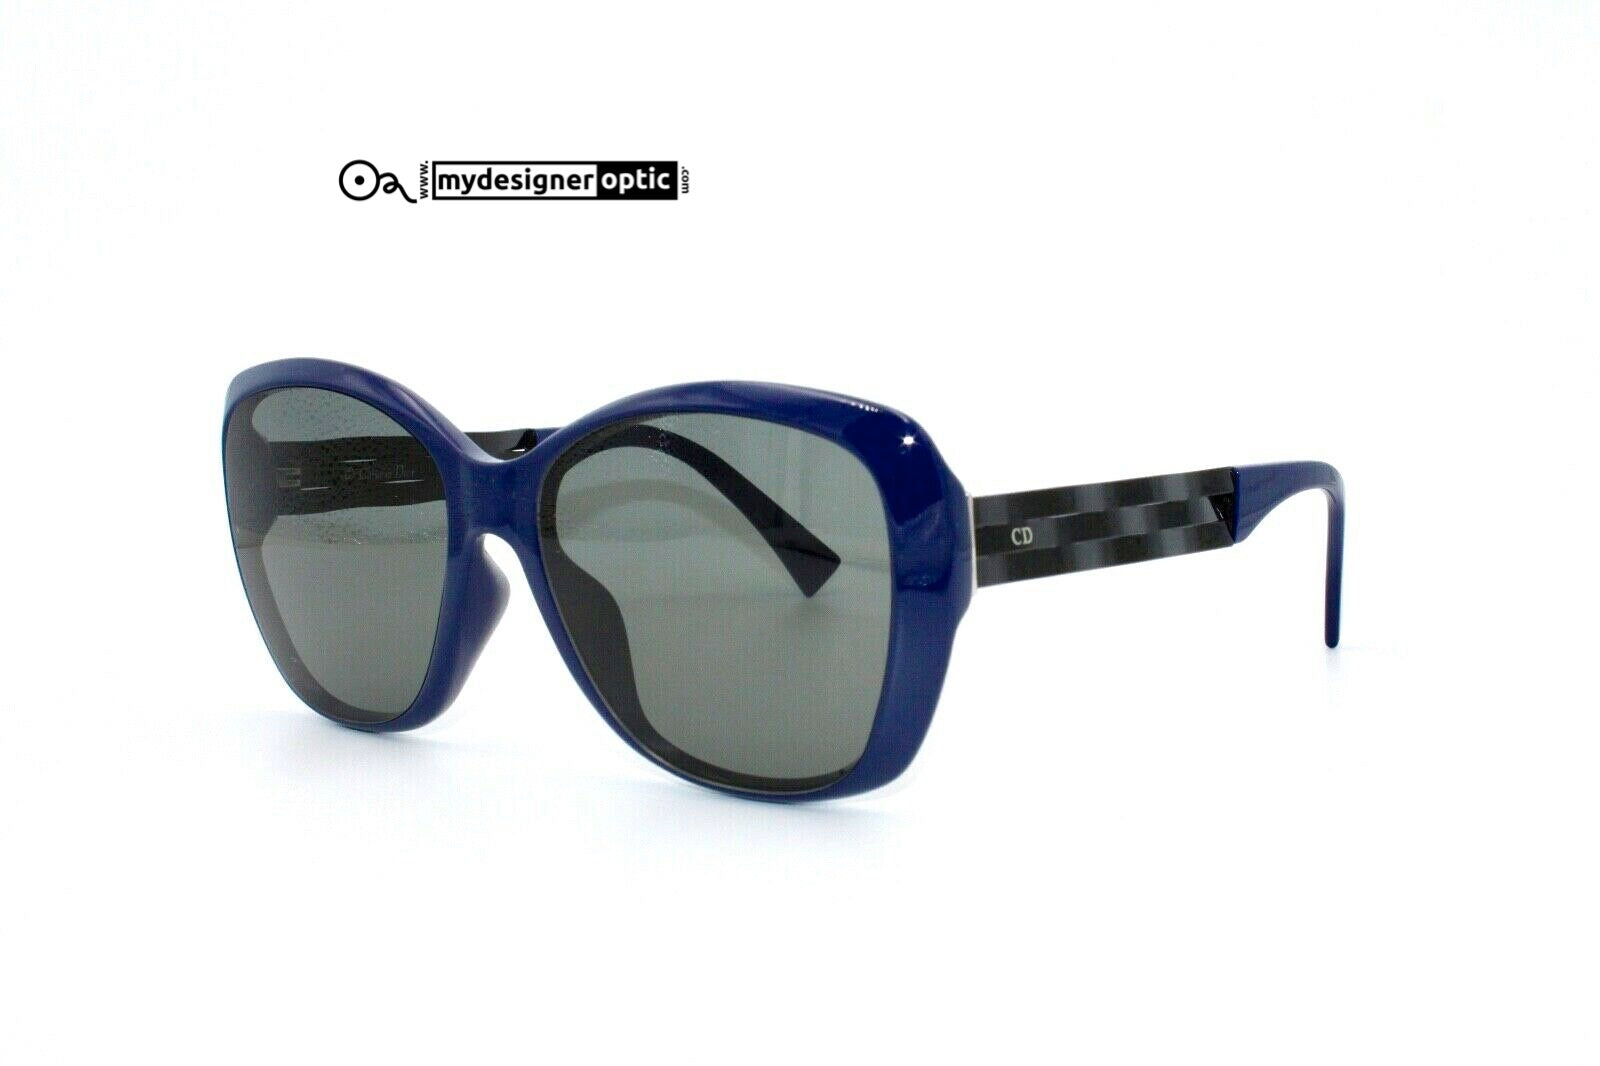 Christian Dior Sunglasses Ribbon1NF S5X8A 57-17 150 Made in Italy (DEAD STOCK) - Mydesigneroptic